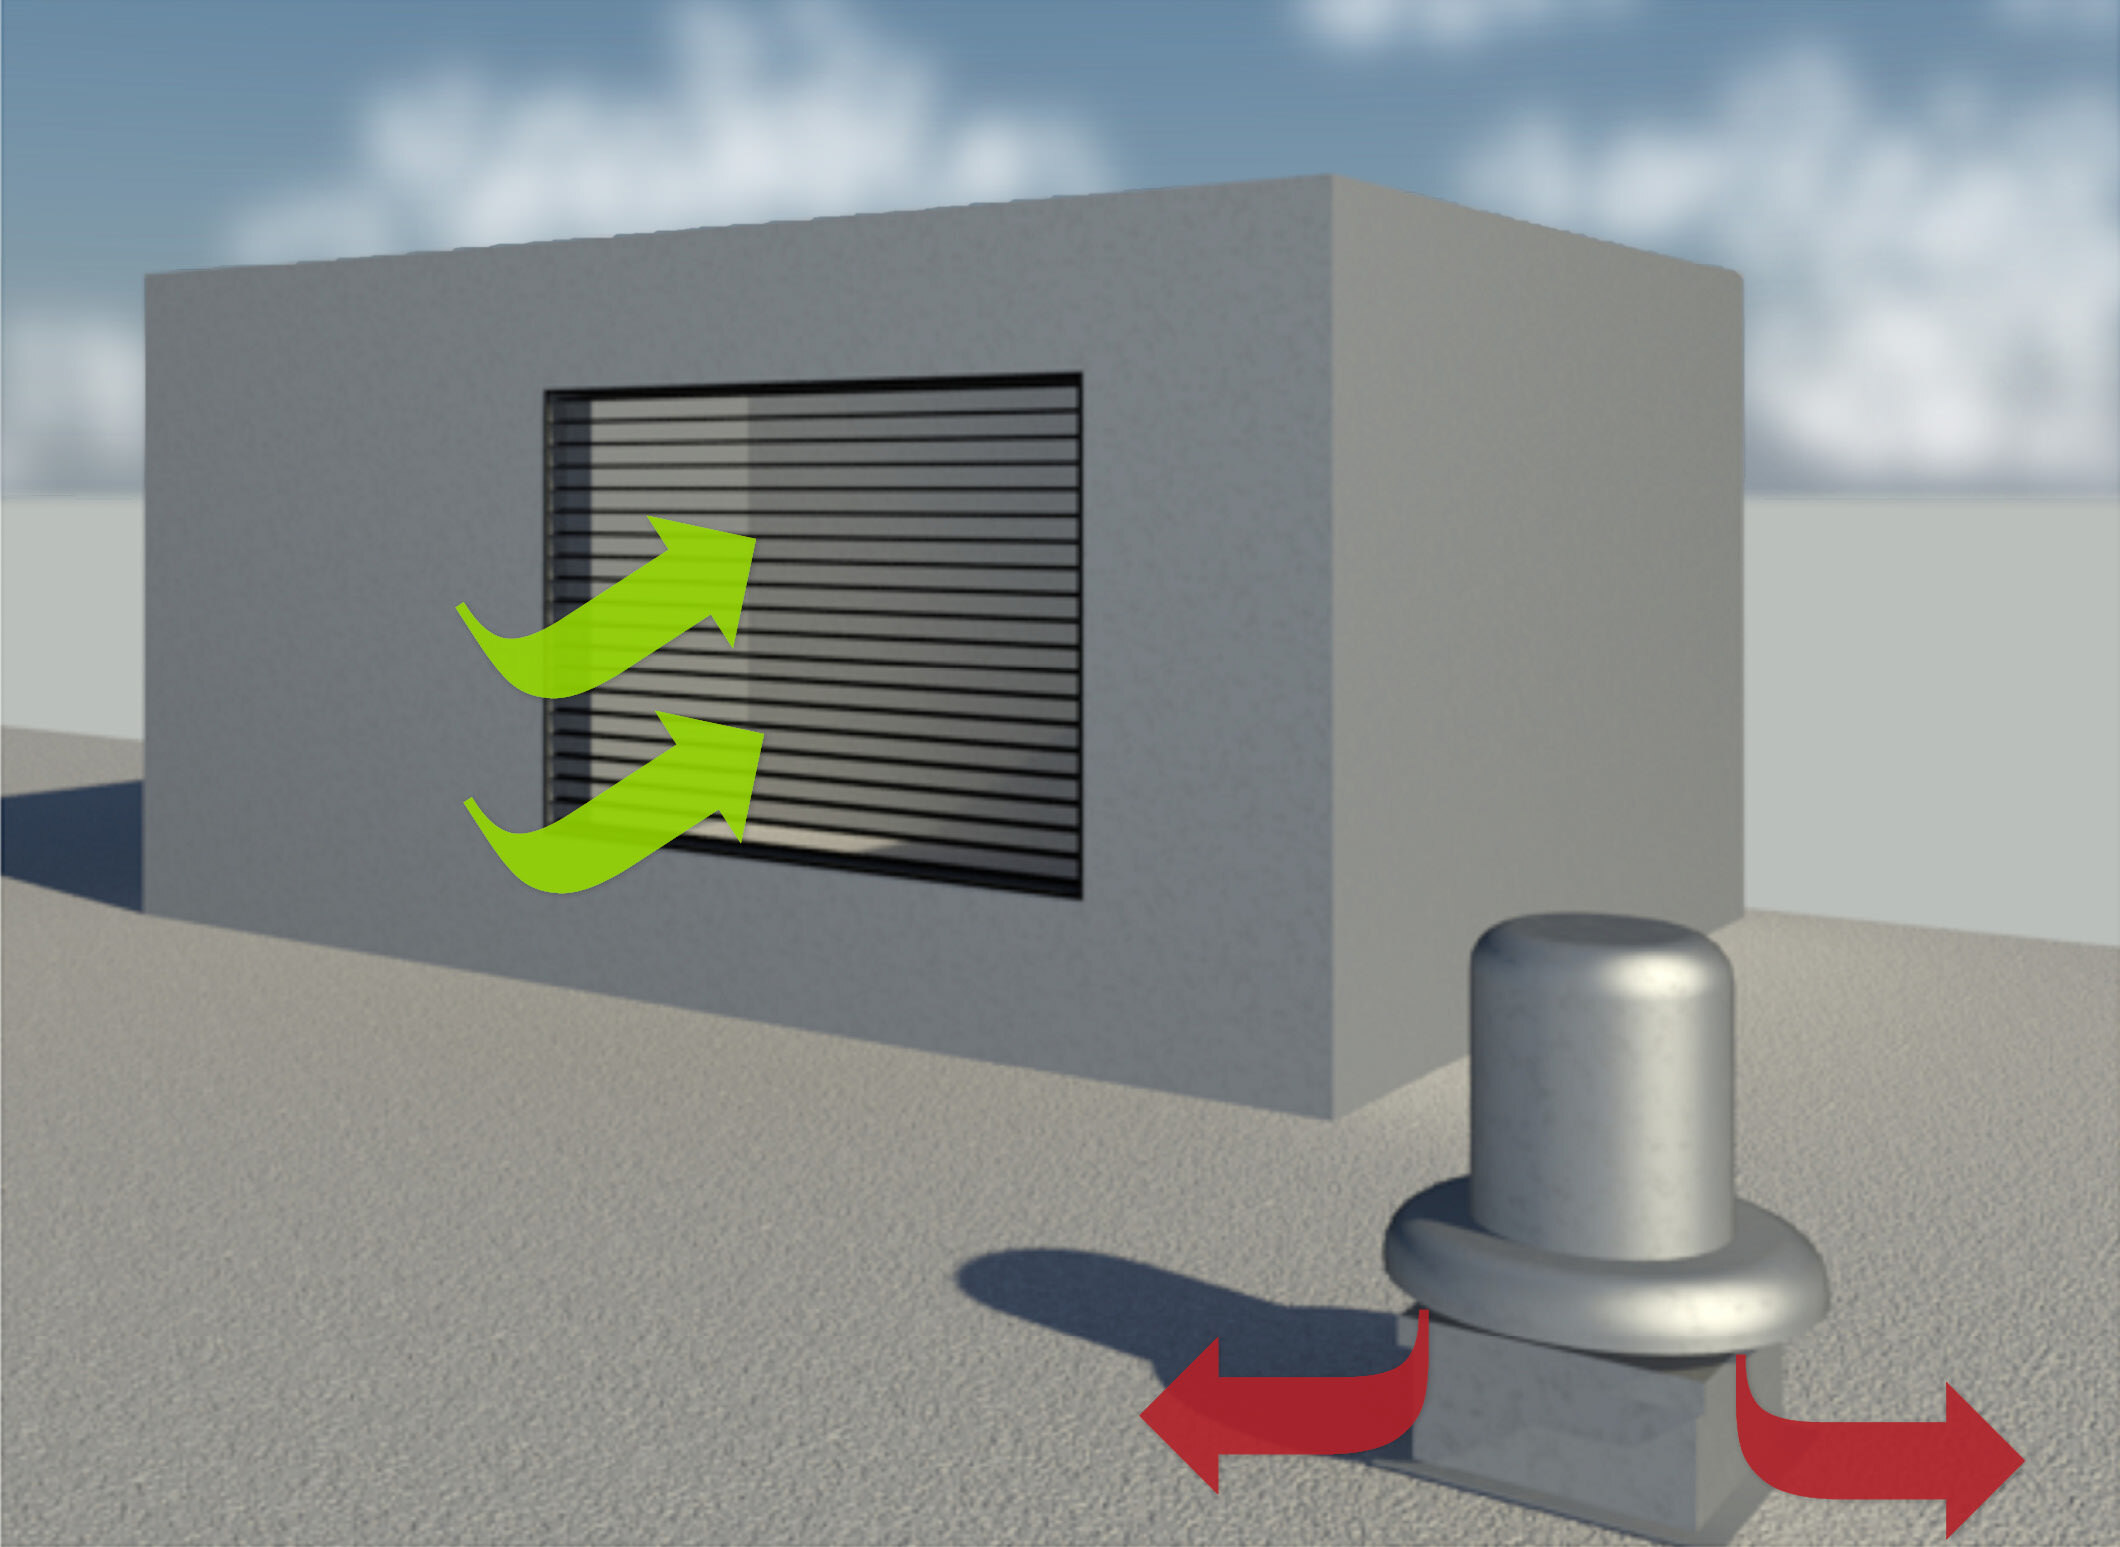 Diagram of air intake and discharge